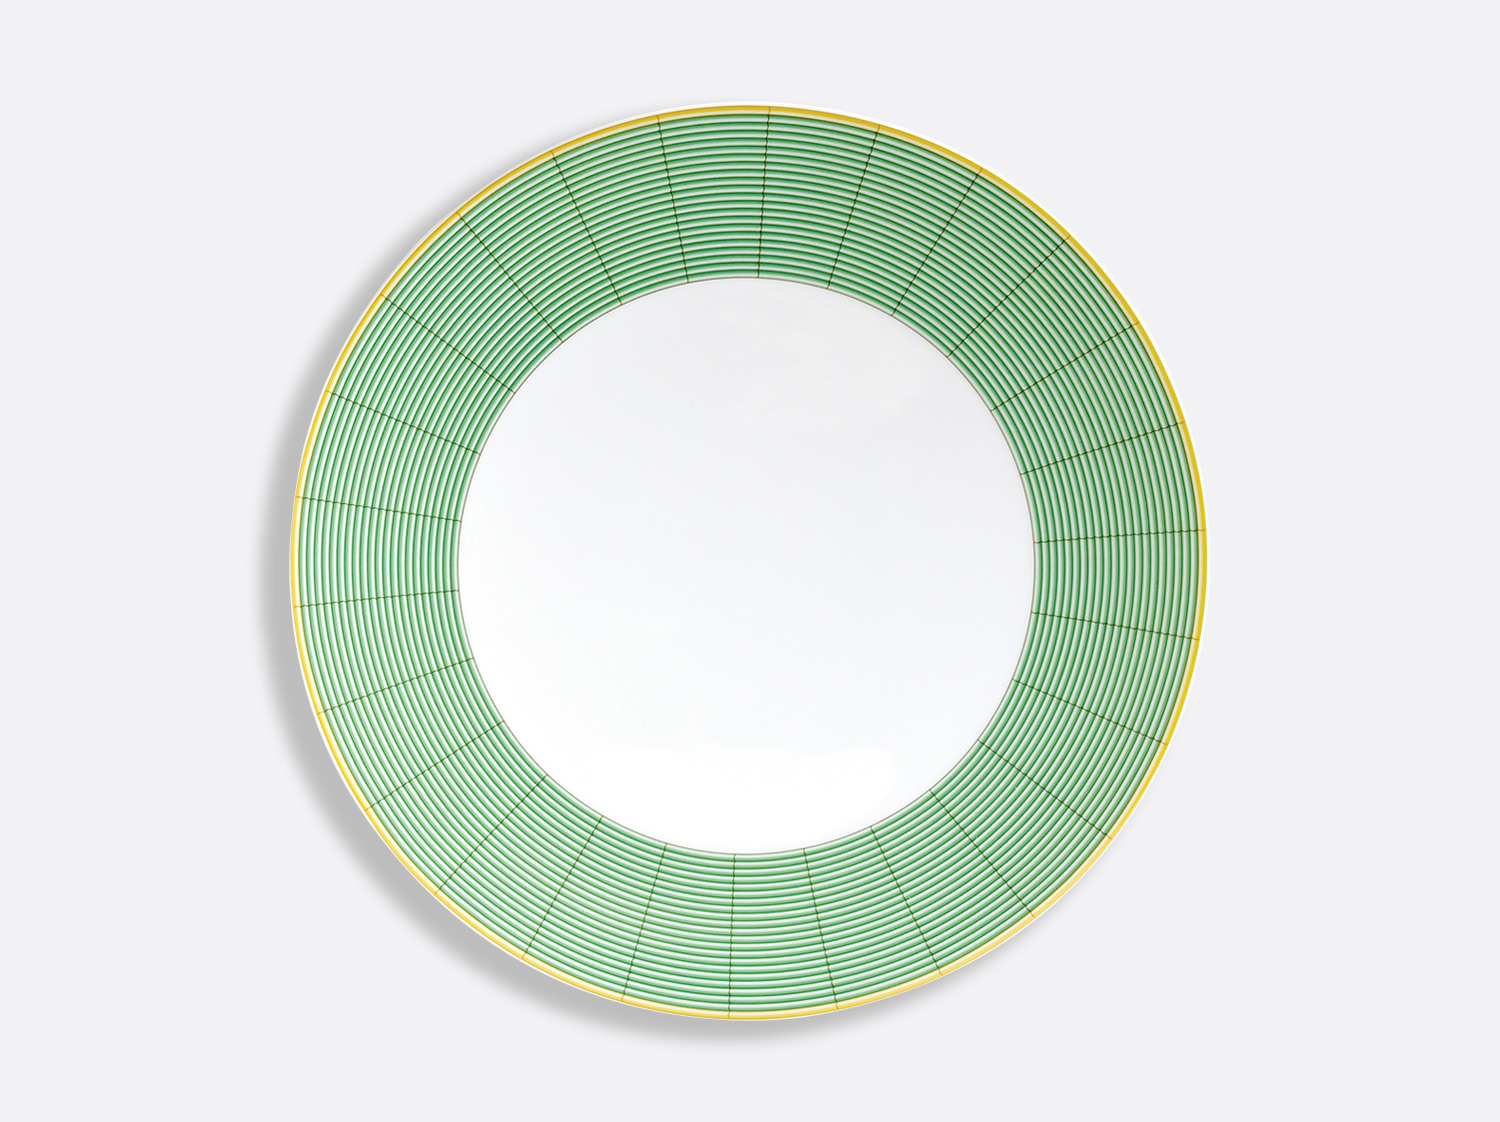 China Ultra flat plate 12.2'' of the collection Jardin indien | Bernardaud